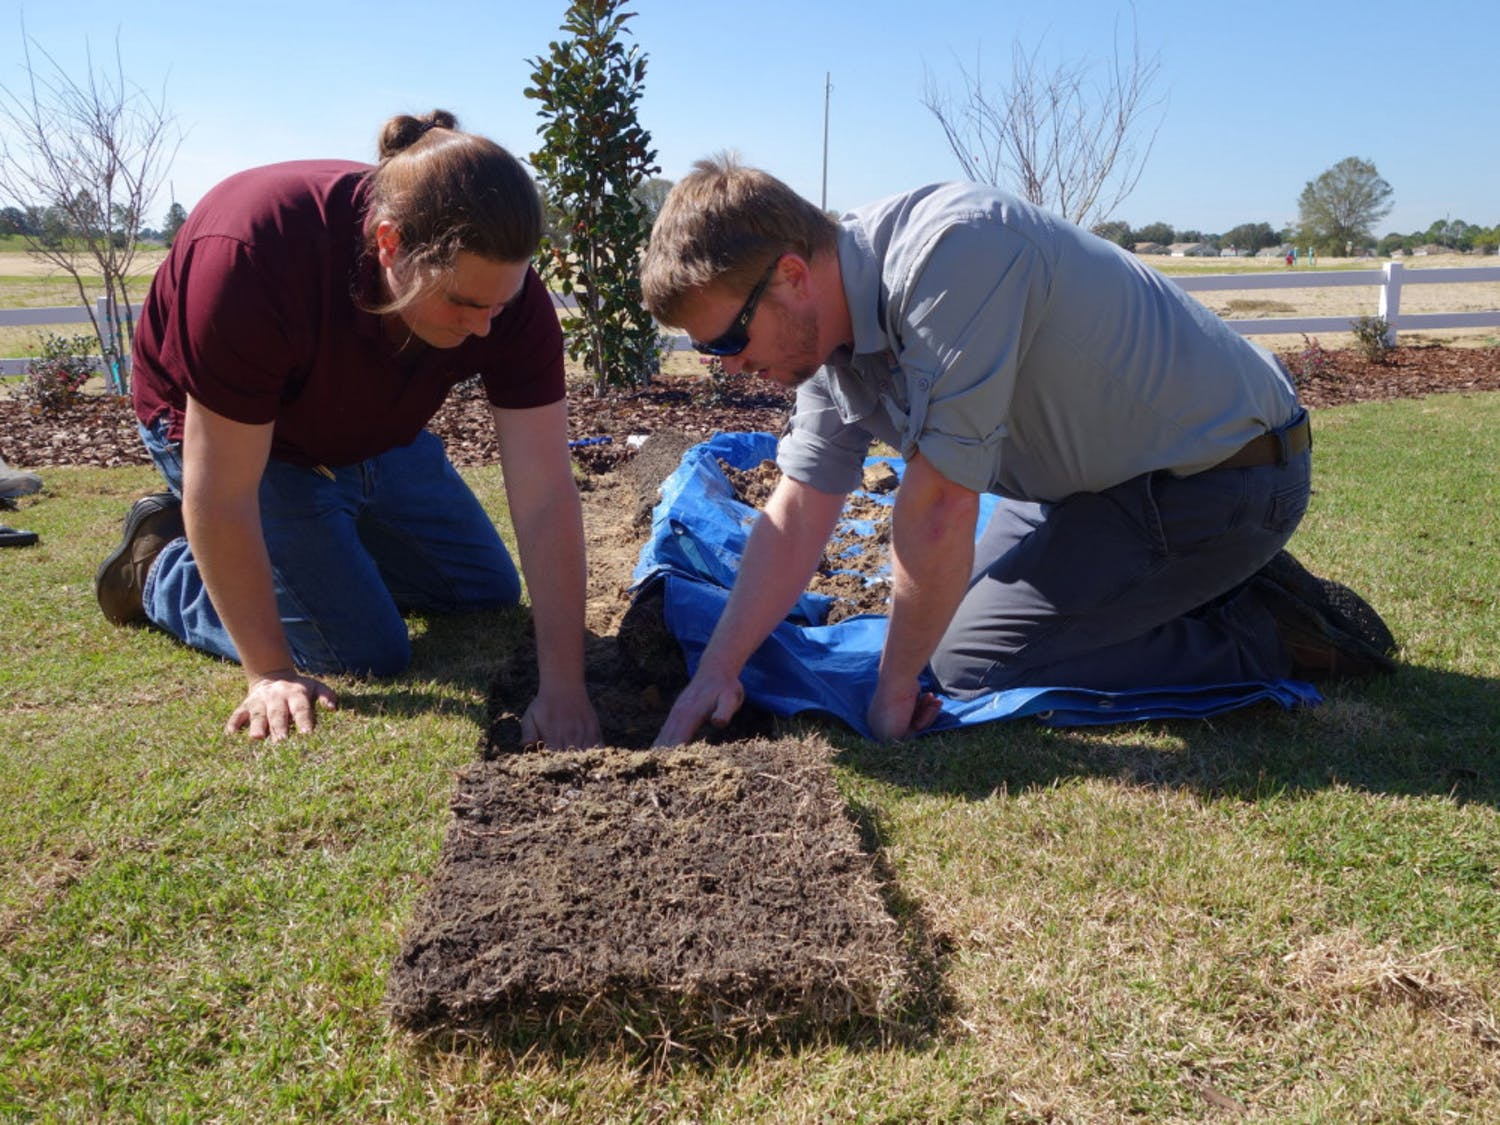 Eban Bean, lead researcher on the team, and Marc Thomas, a student studying agricultural and biological engineering, lay out compost. The team is researching whether compost can reduce the amount of water used for residential lawns.